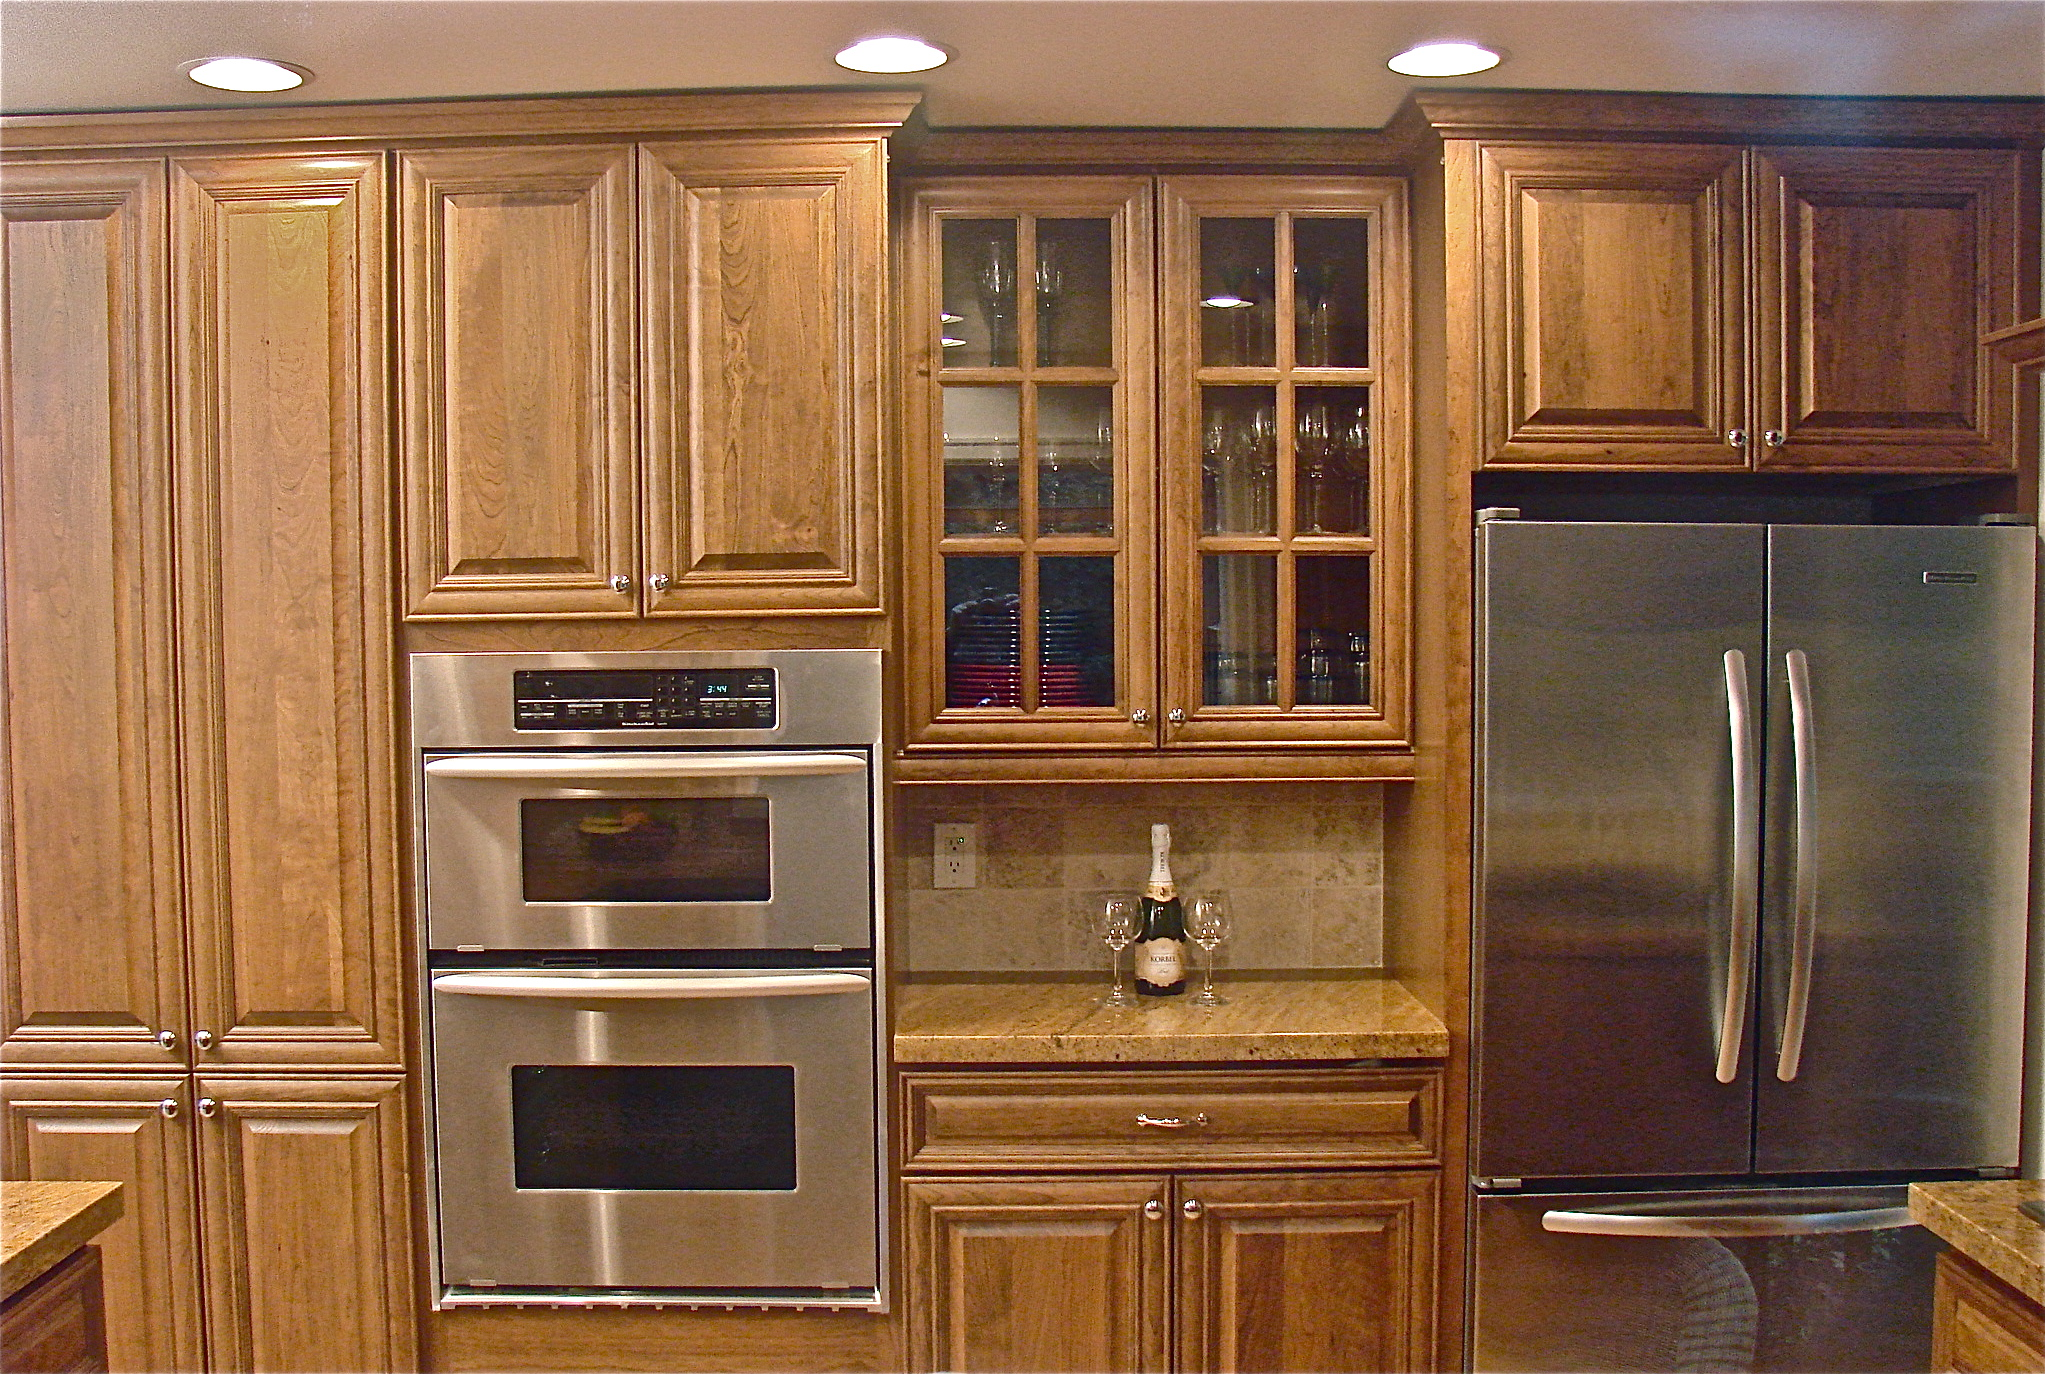 kitchen cabinets stains pictures photo - 7